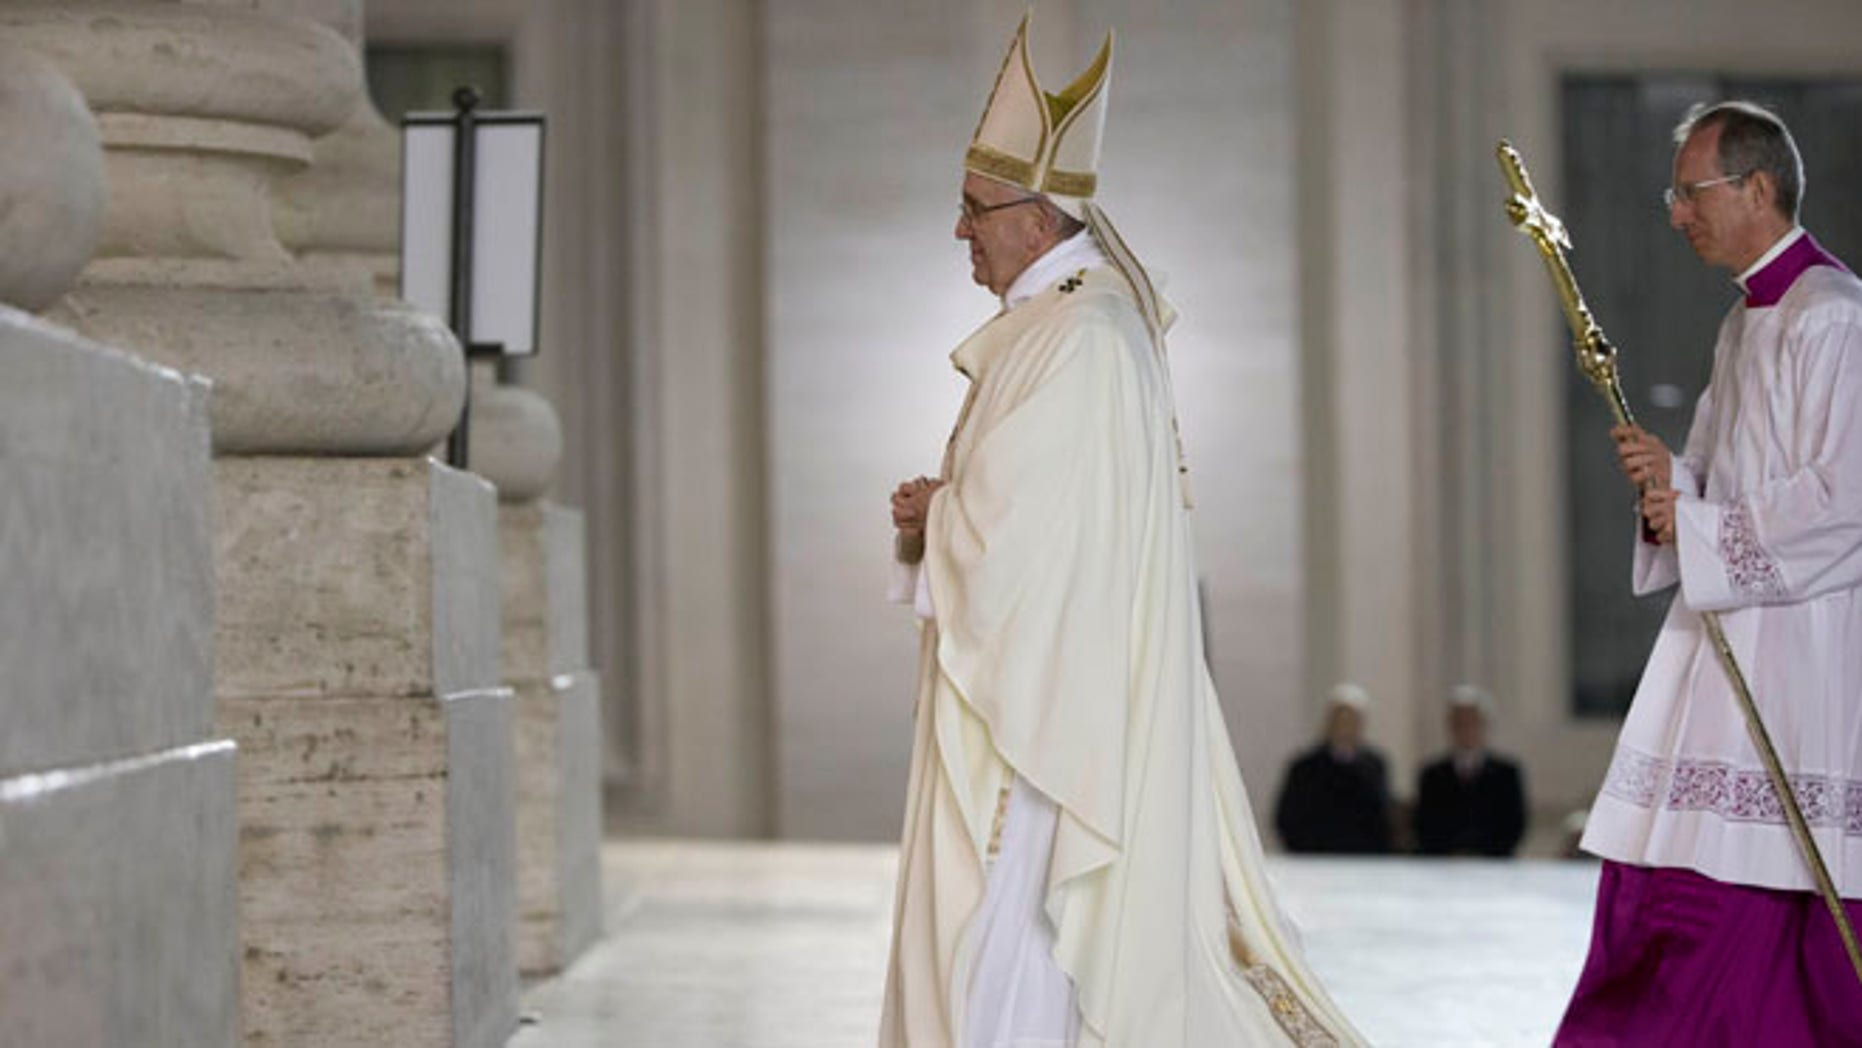 Pope Francis leaves after he greeted nuns and priests, in St. Peter's Square, at the Vatican, Tuesday, Feb. 2, 2016. The Pope earlier celebrated a mass inside the Basilica and then walked out to greet groups on nuns and priests. (AP Photo/Andrew Medichini)